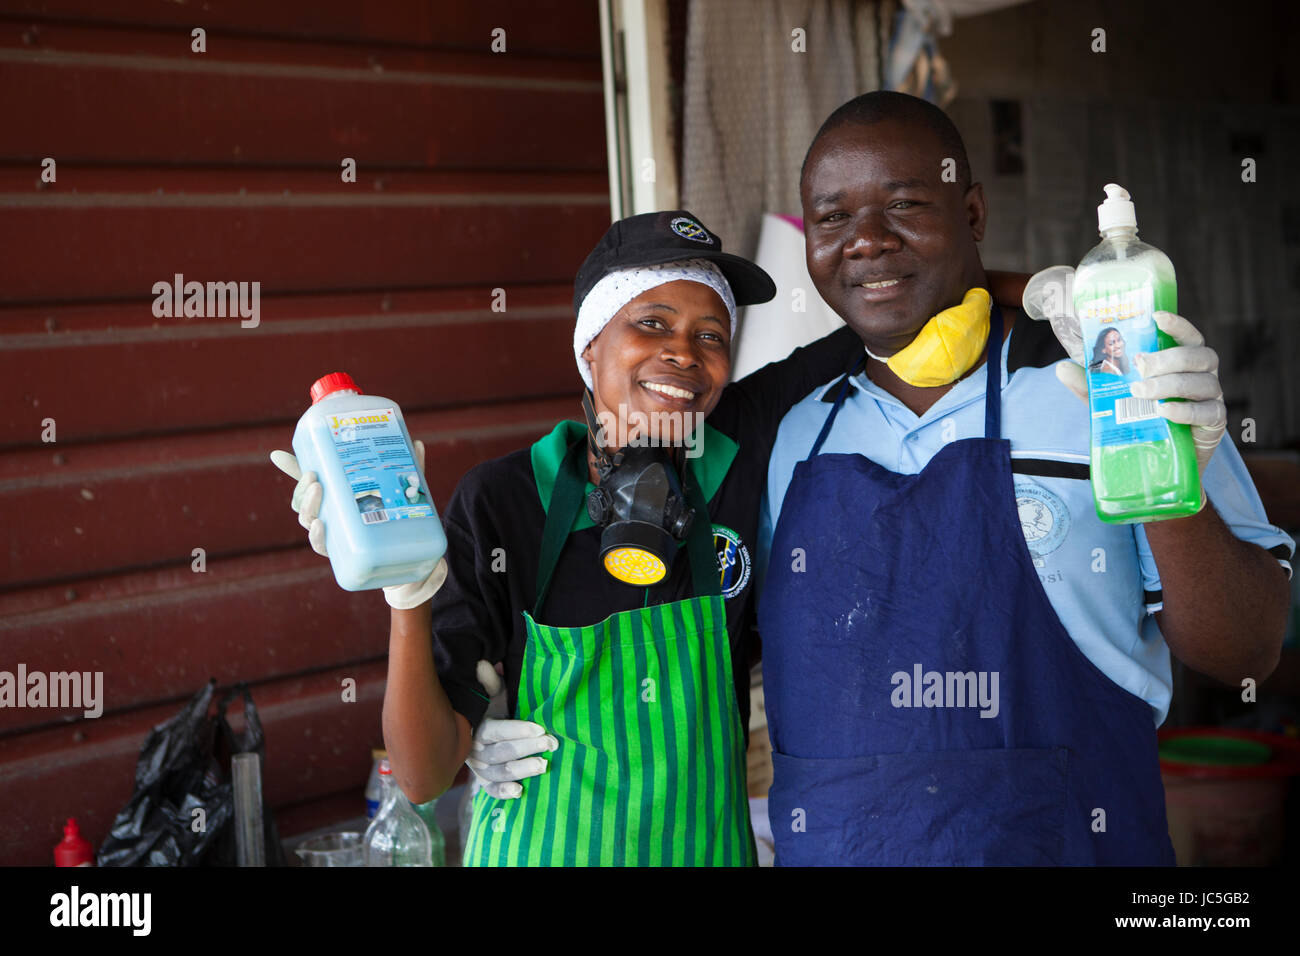 Small business owners who produce cleaning products. Tanzania, Africa - Stock Image